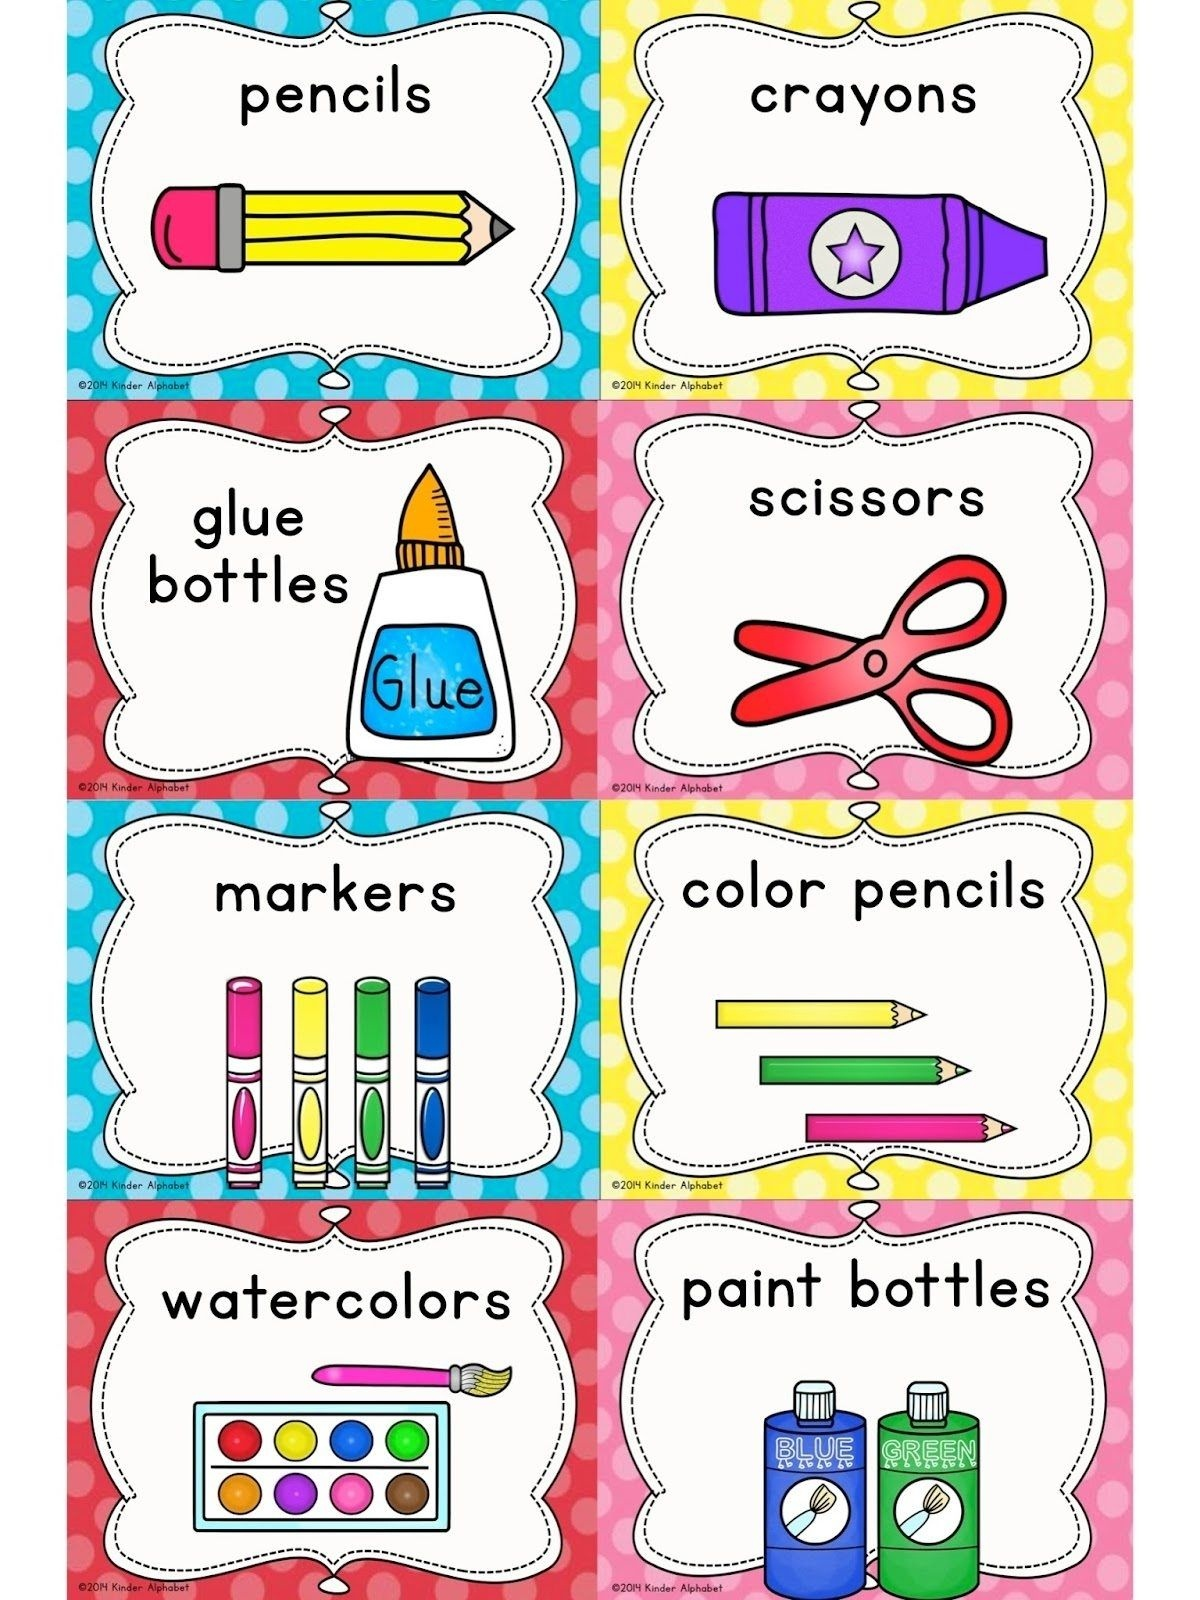 If You've Ever Wanted To Make Those Cute Labels Or Tags You See On - Free Printable Classroom Labels With Pictures